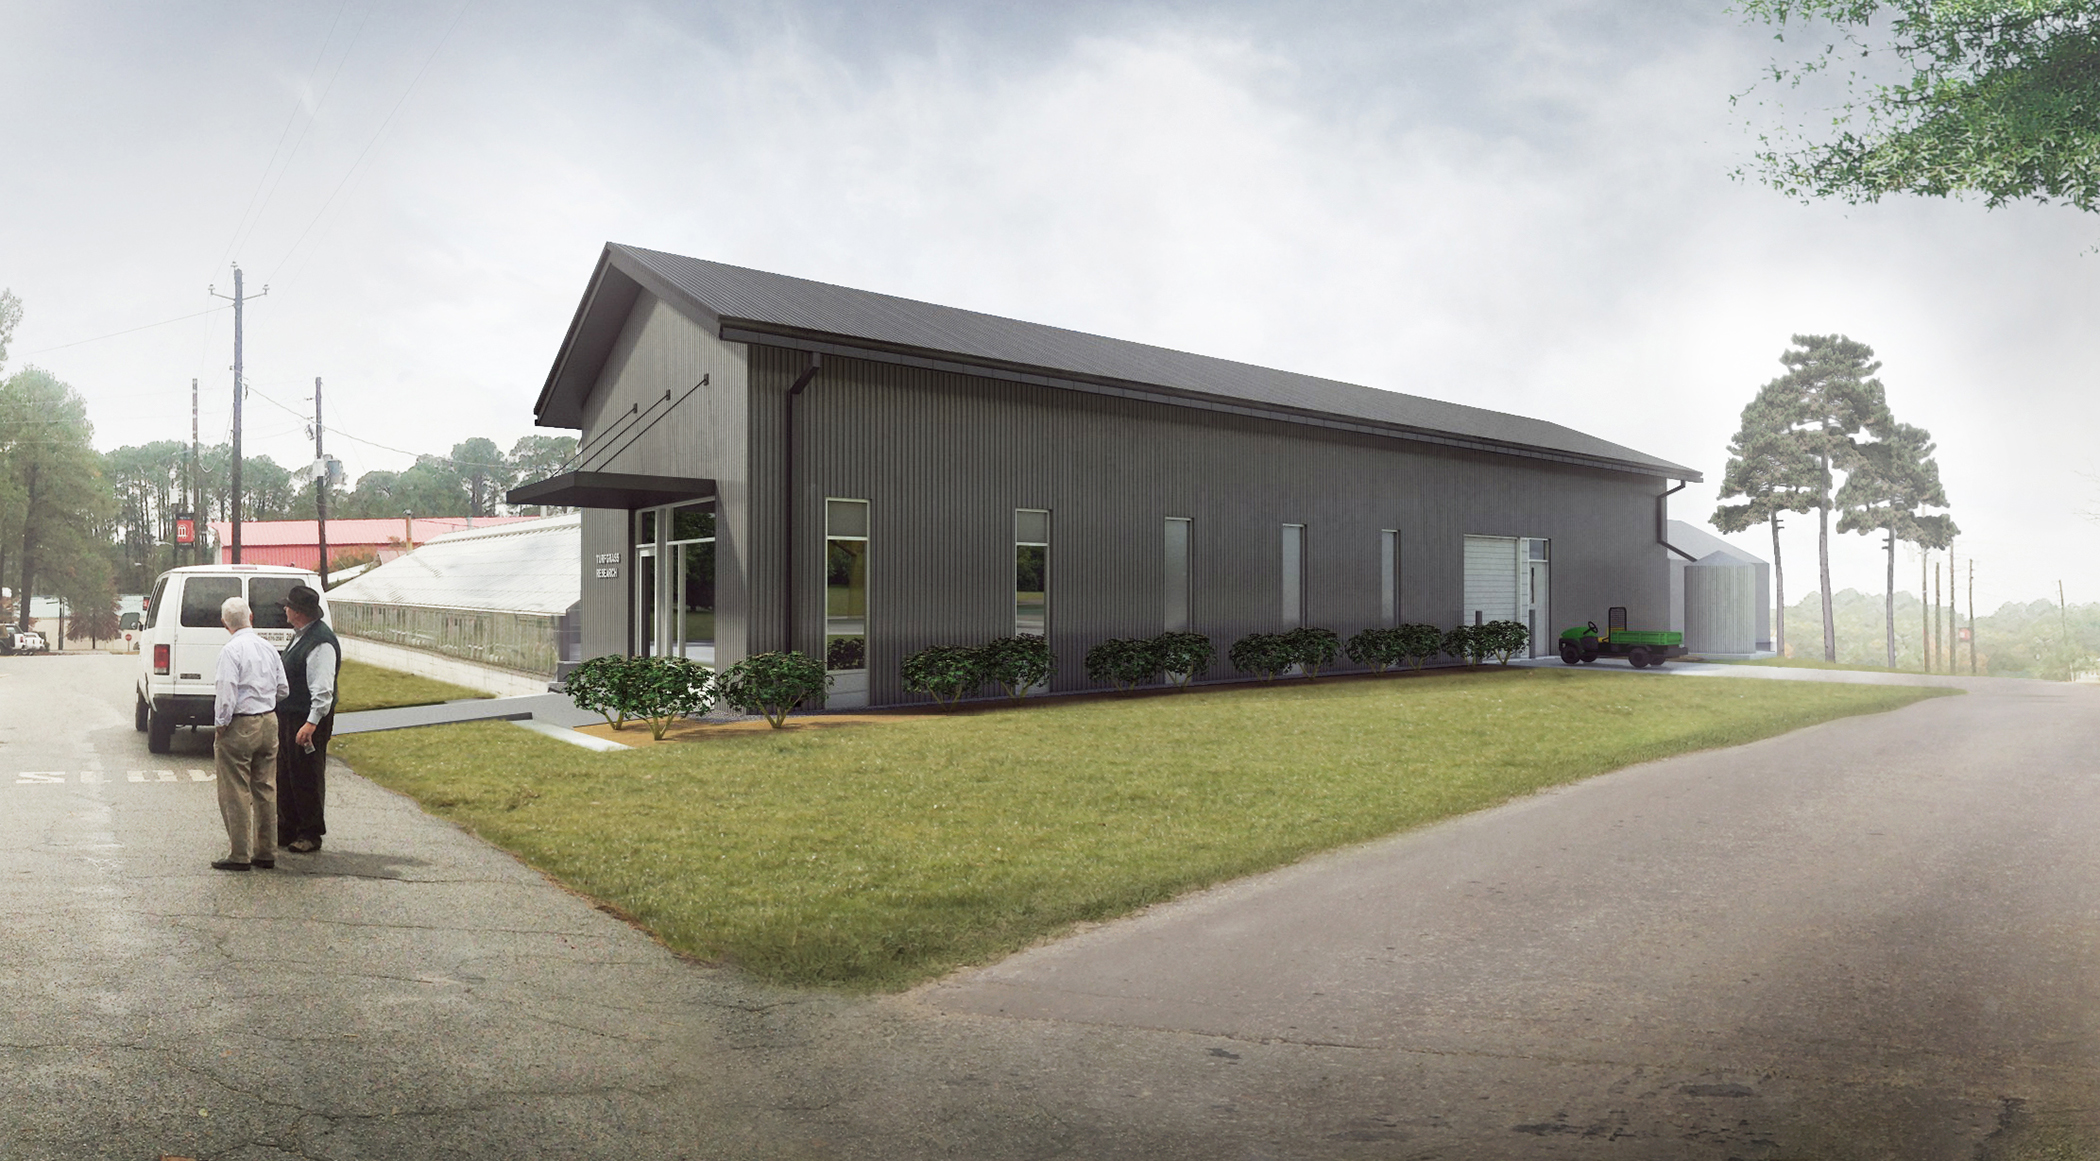 UGA's new turfgrass research facility in Tifton will include new greenhouses and a headhouse to support UGA's expanding warm-season turf breeding program.